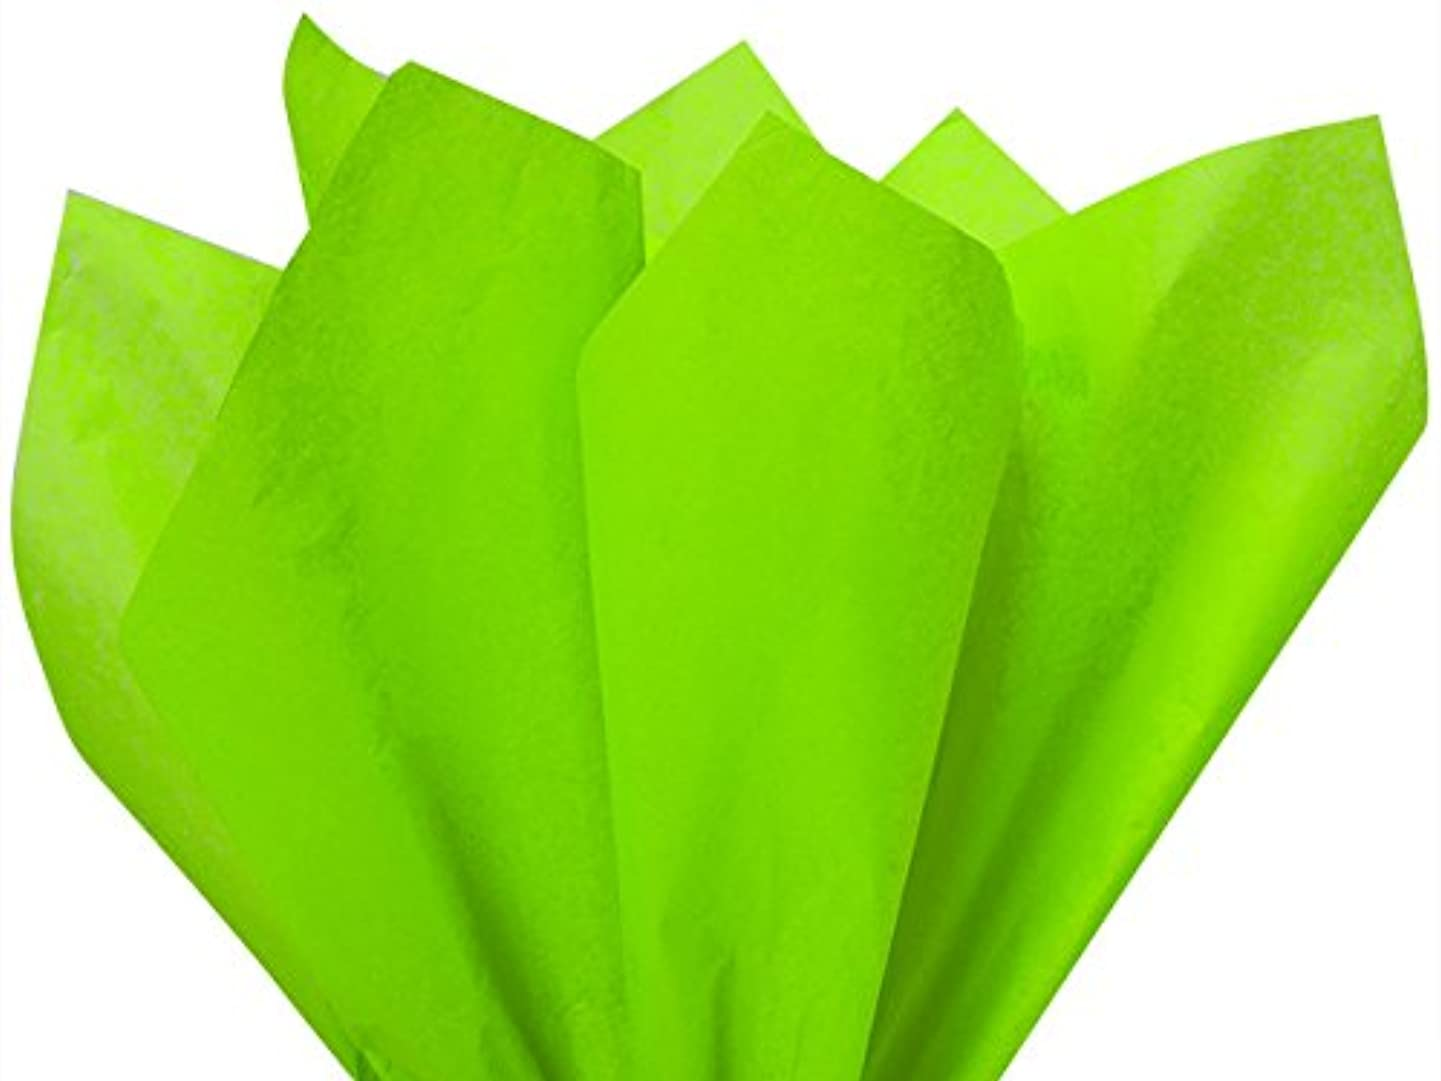 Bright Lime Tissue Paper 15 x 20 100 Sheets Premium Quality Tissue Paper by A1 bakery supplies